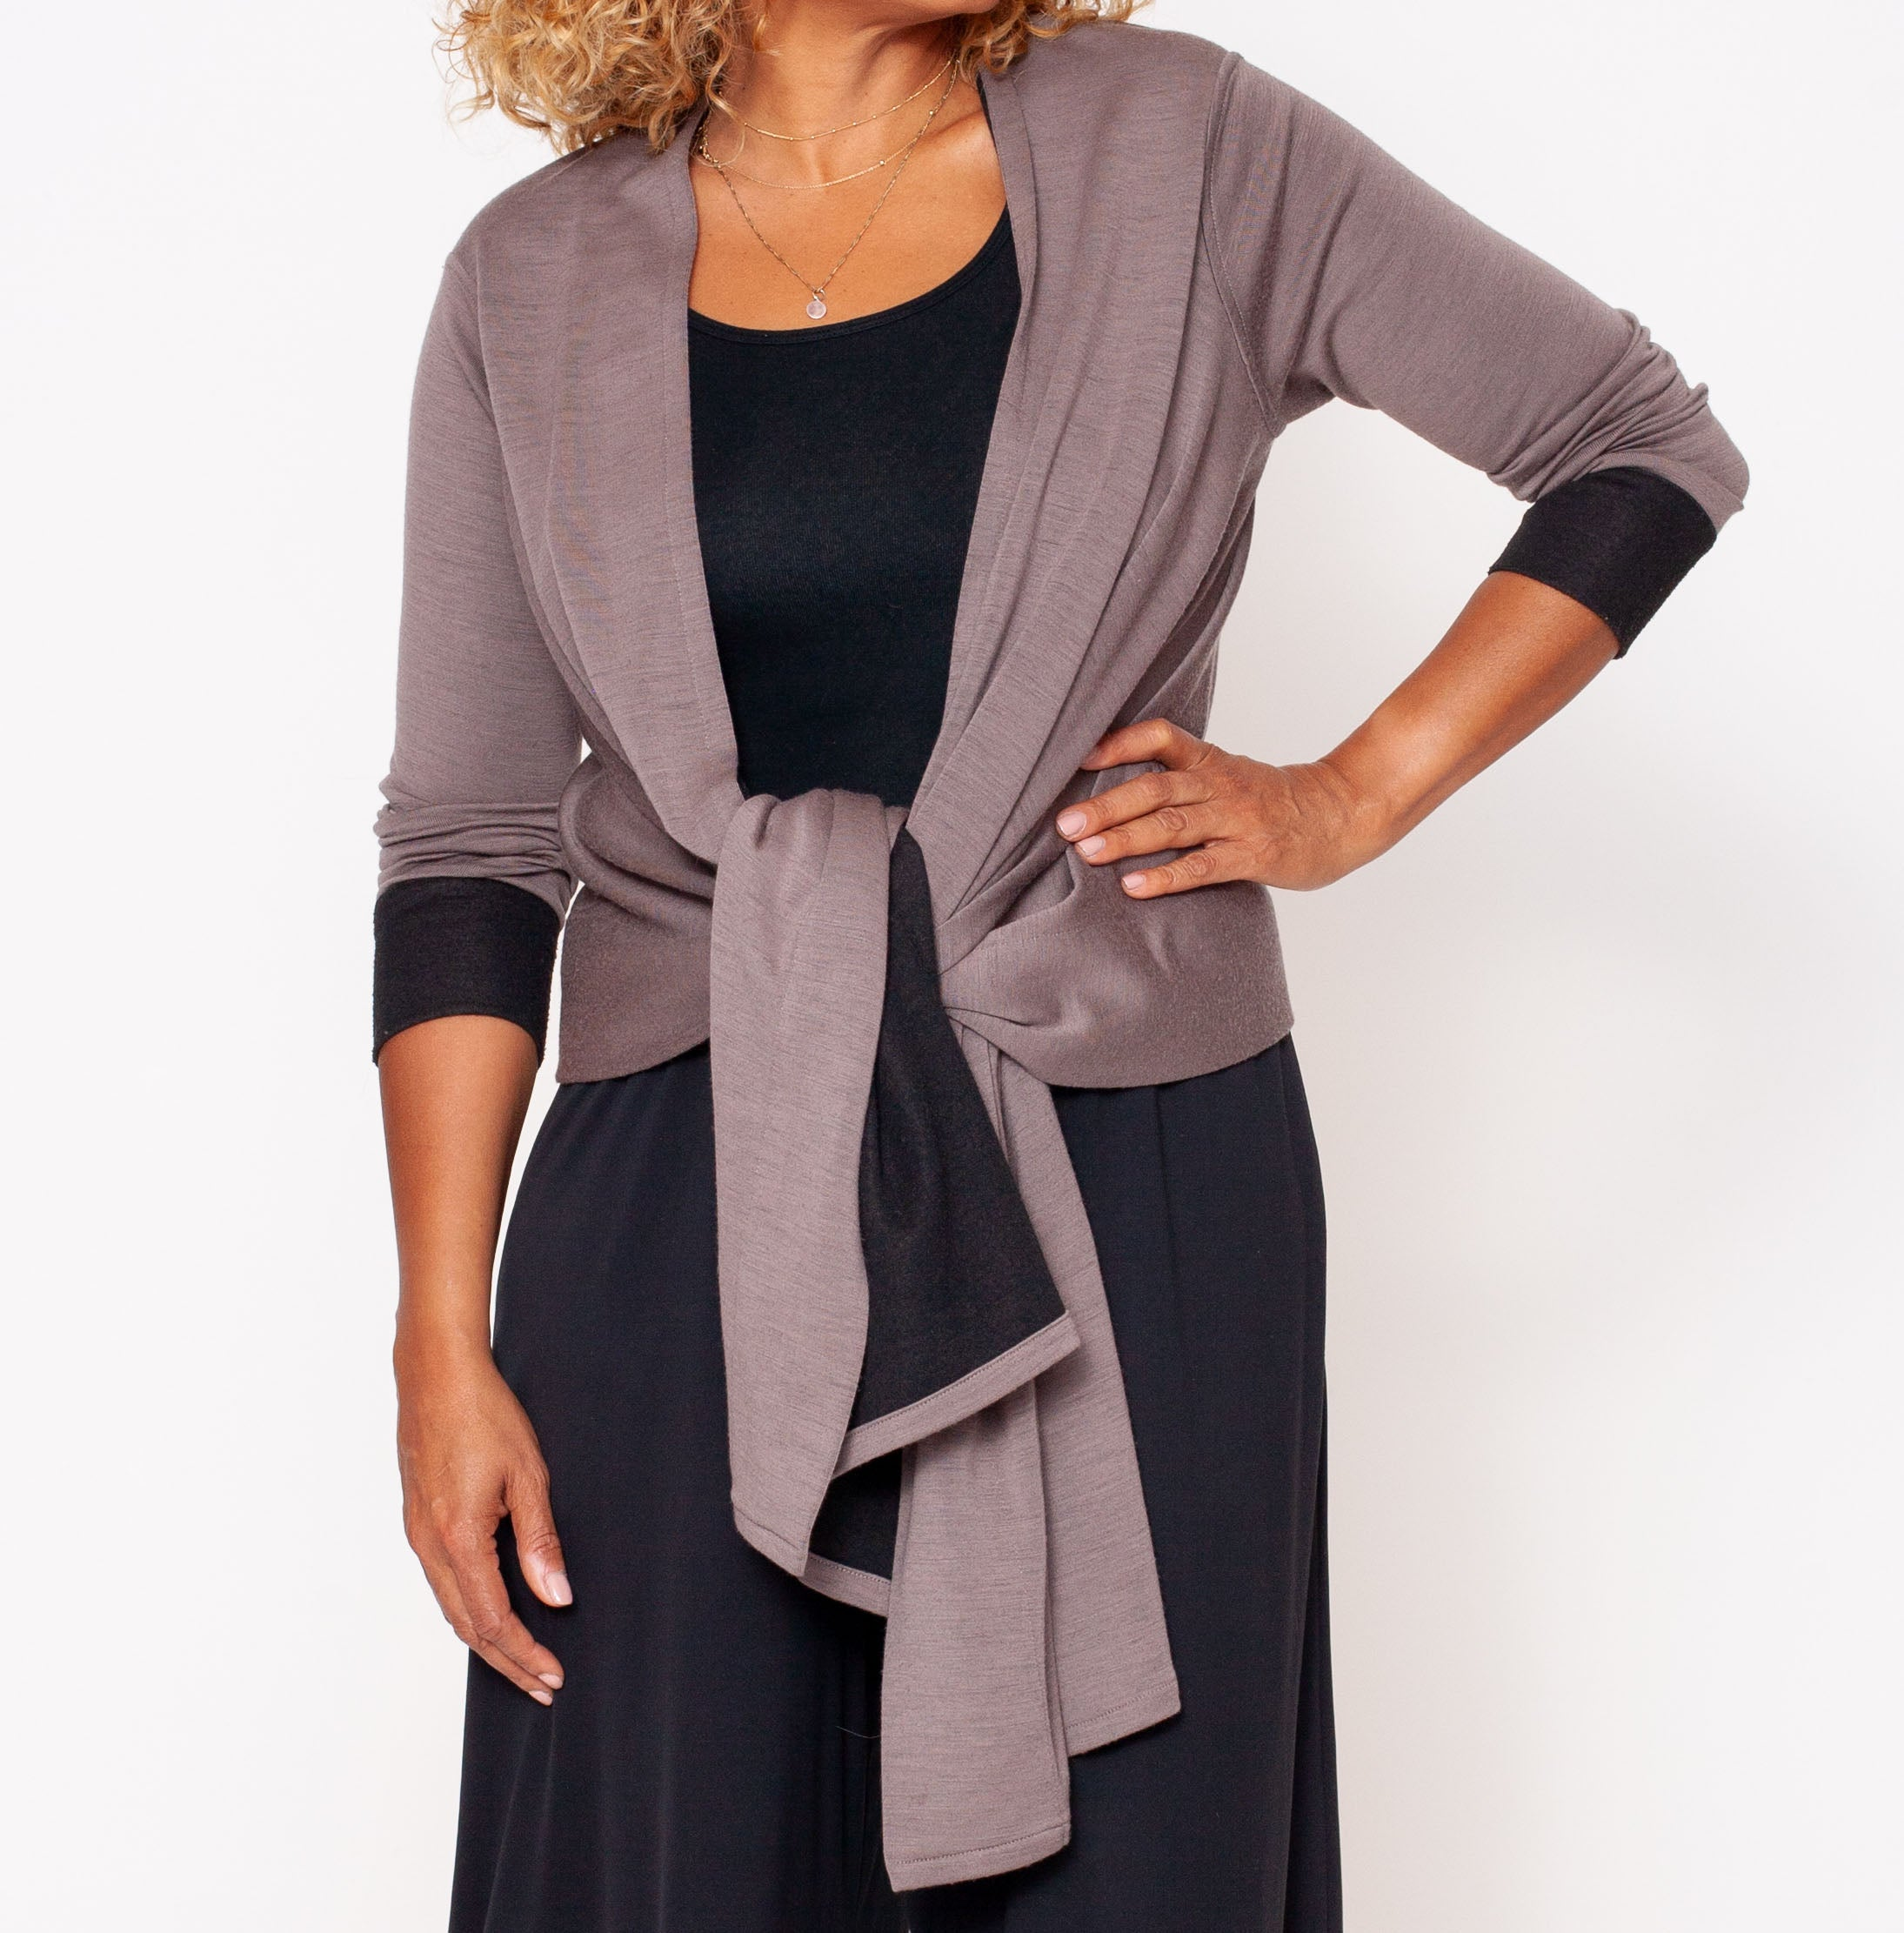 VIV Reversible Cardi-Wrap Sweater - ZoeGoes - a 1 Bag Travel Warrior company